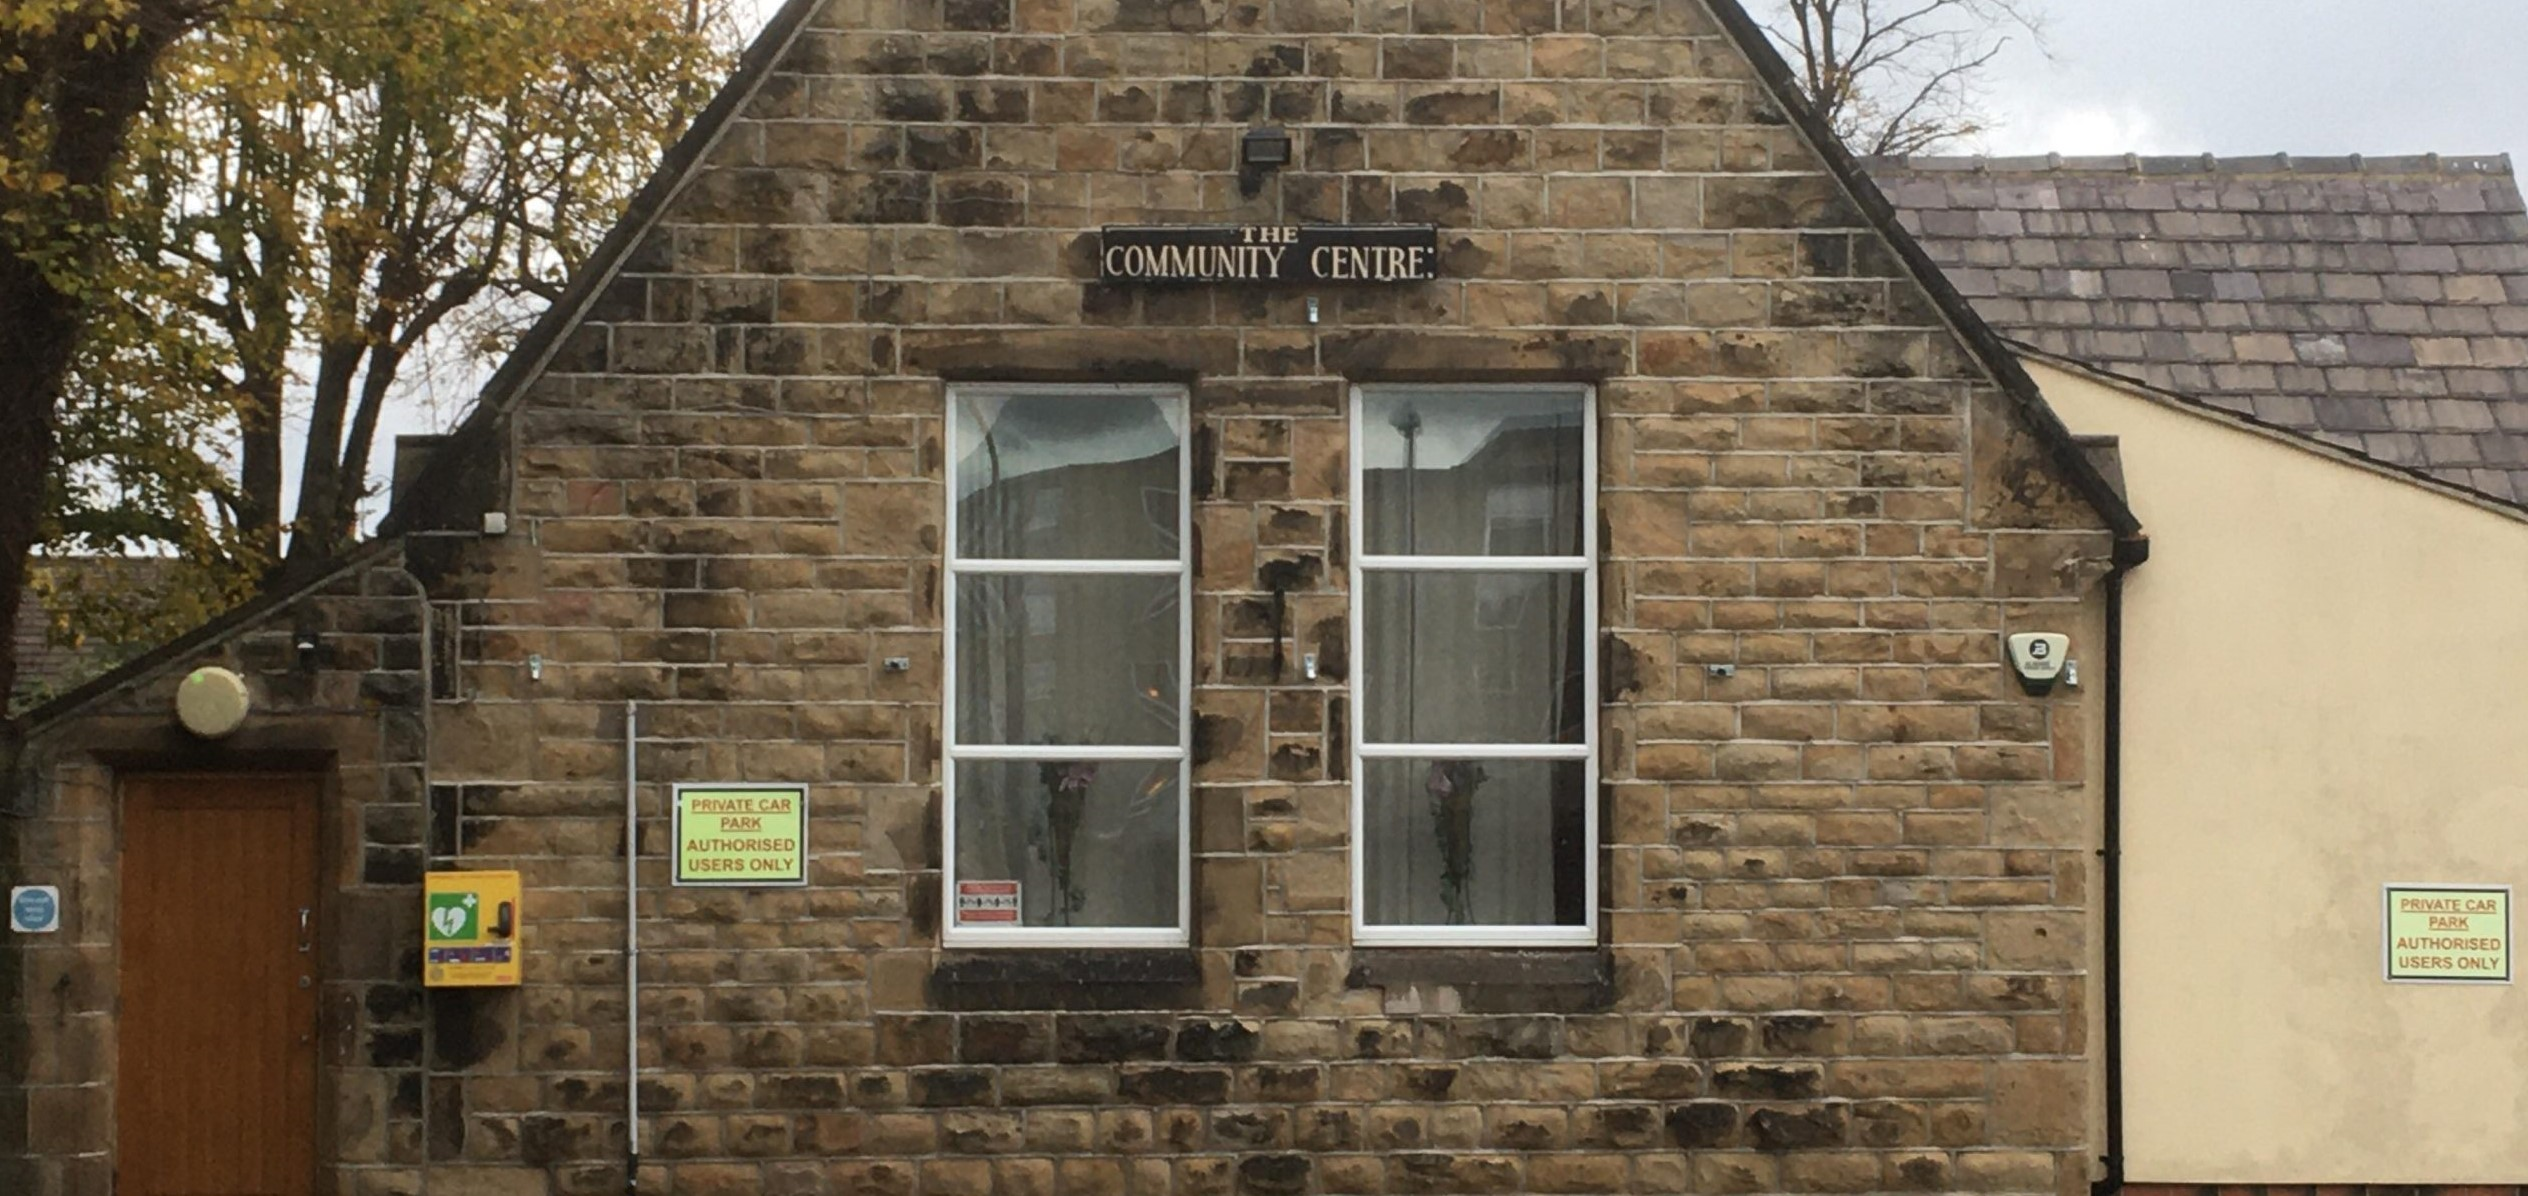 Roberttown Community Centre